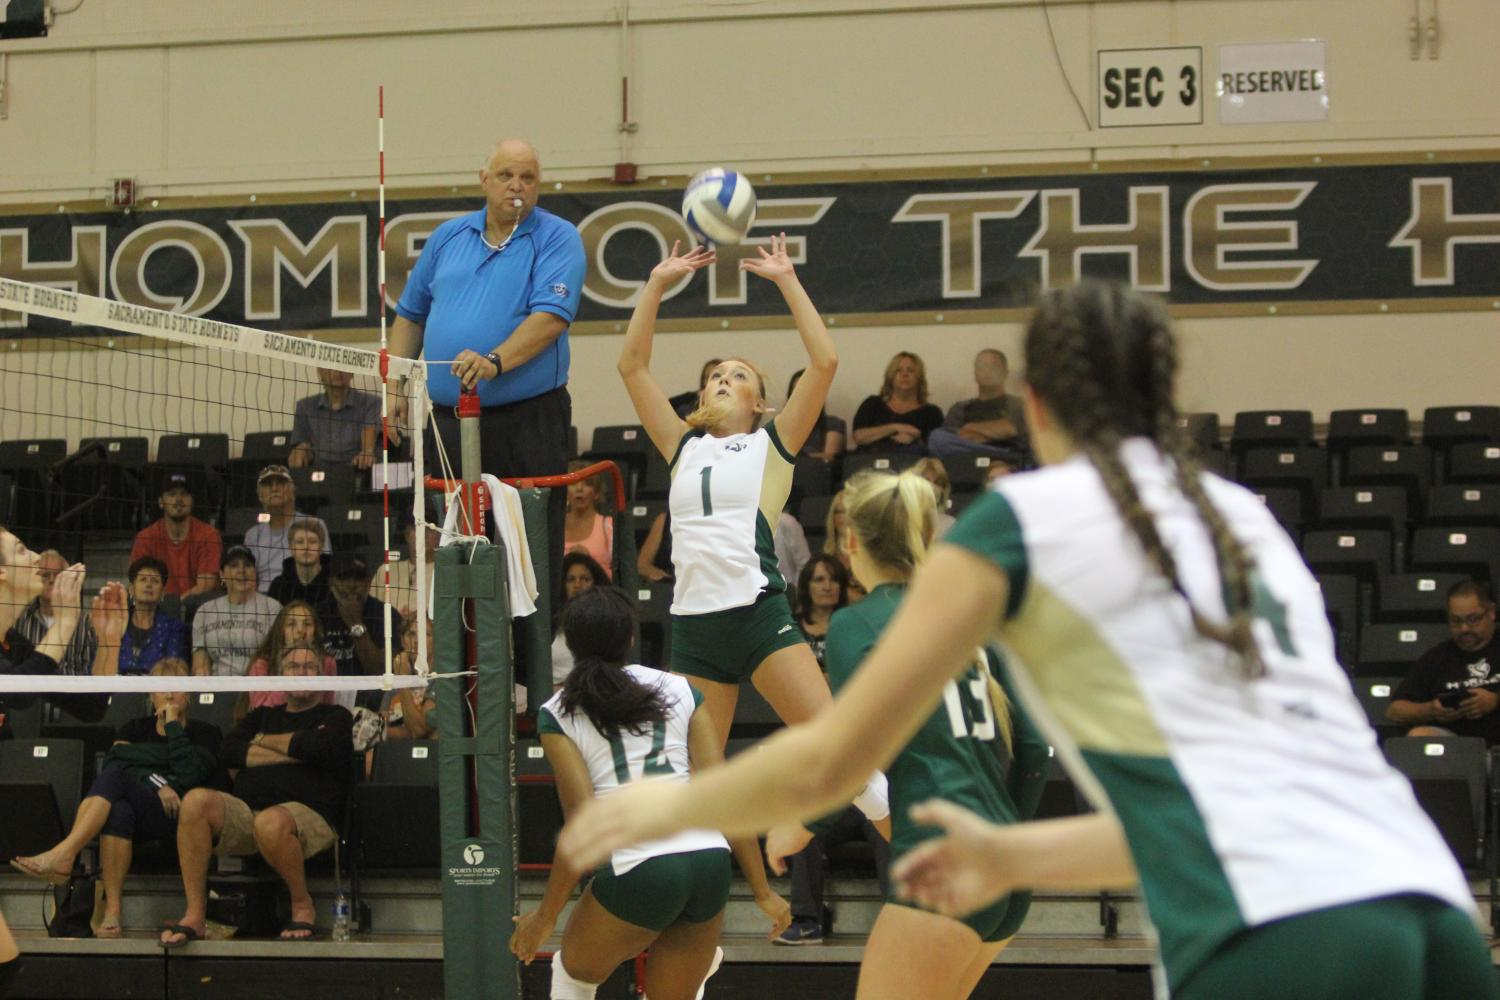 Sacramento State senior setter Kennedy Kurtz sets the ball to junior middle blocker Brie Gathright against Idaho State Sept. 23 at Colberg Court.